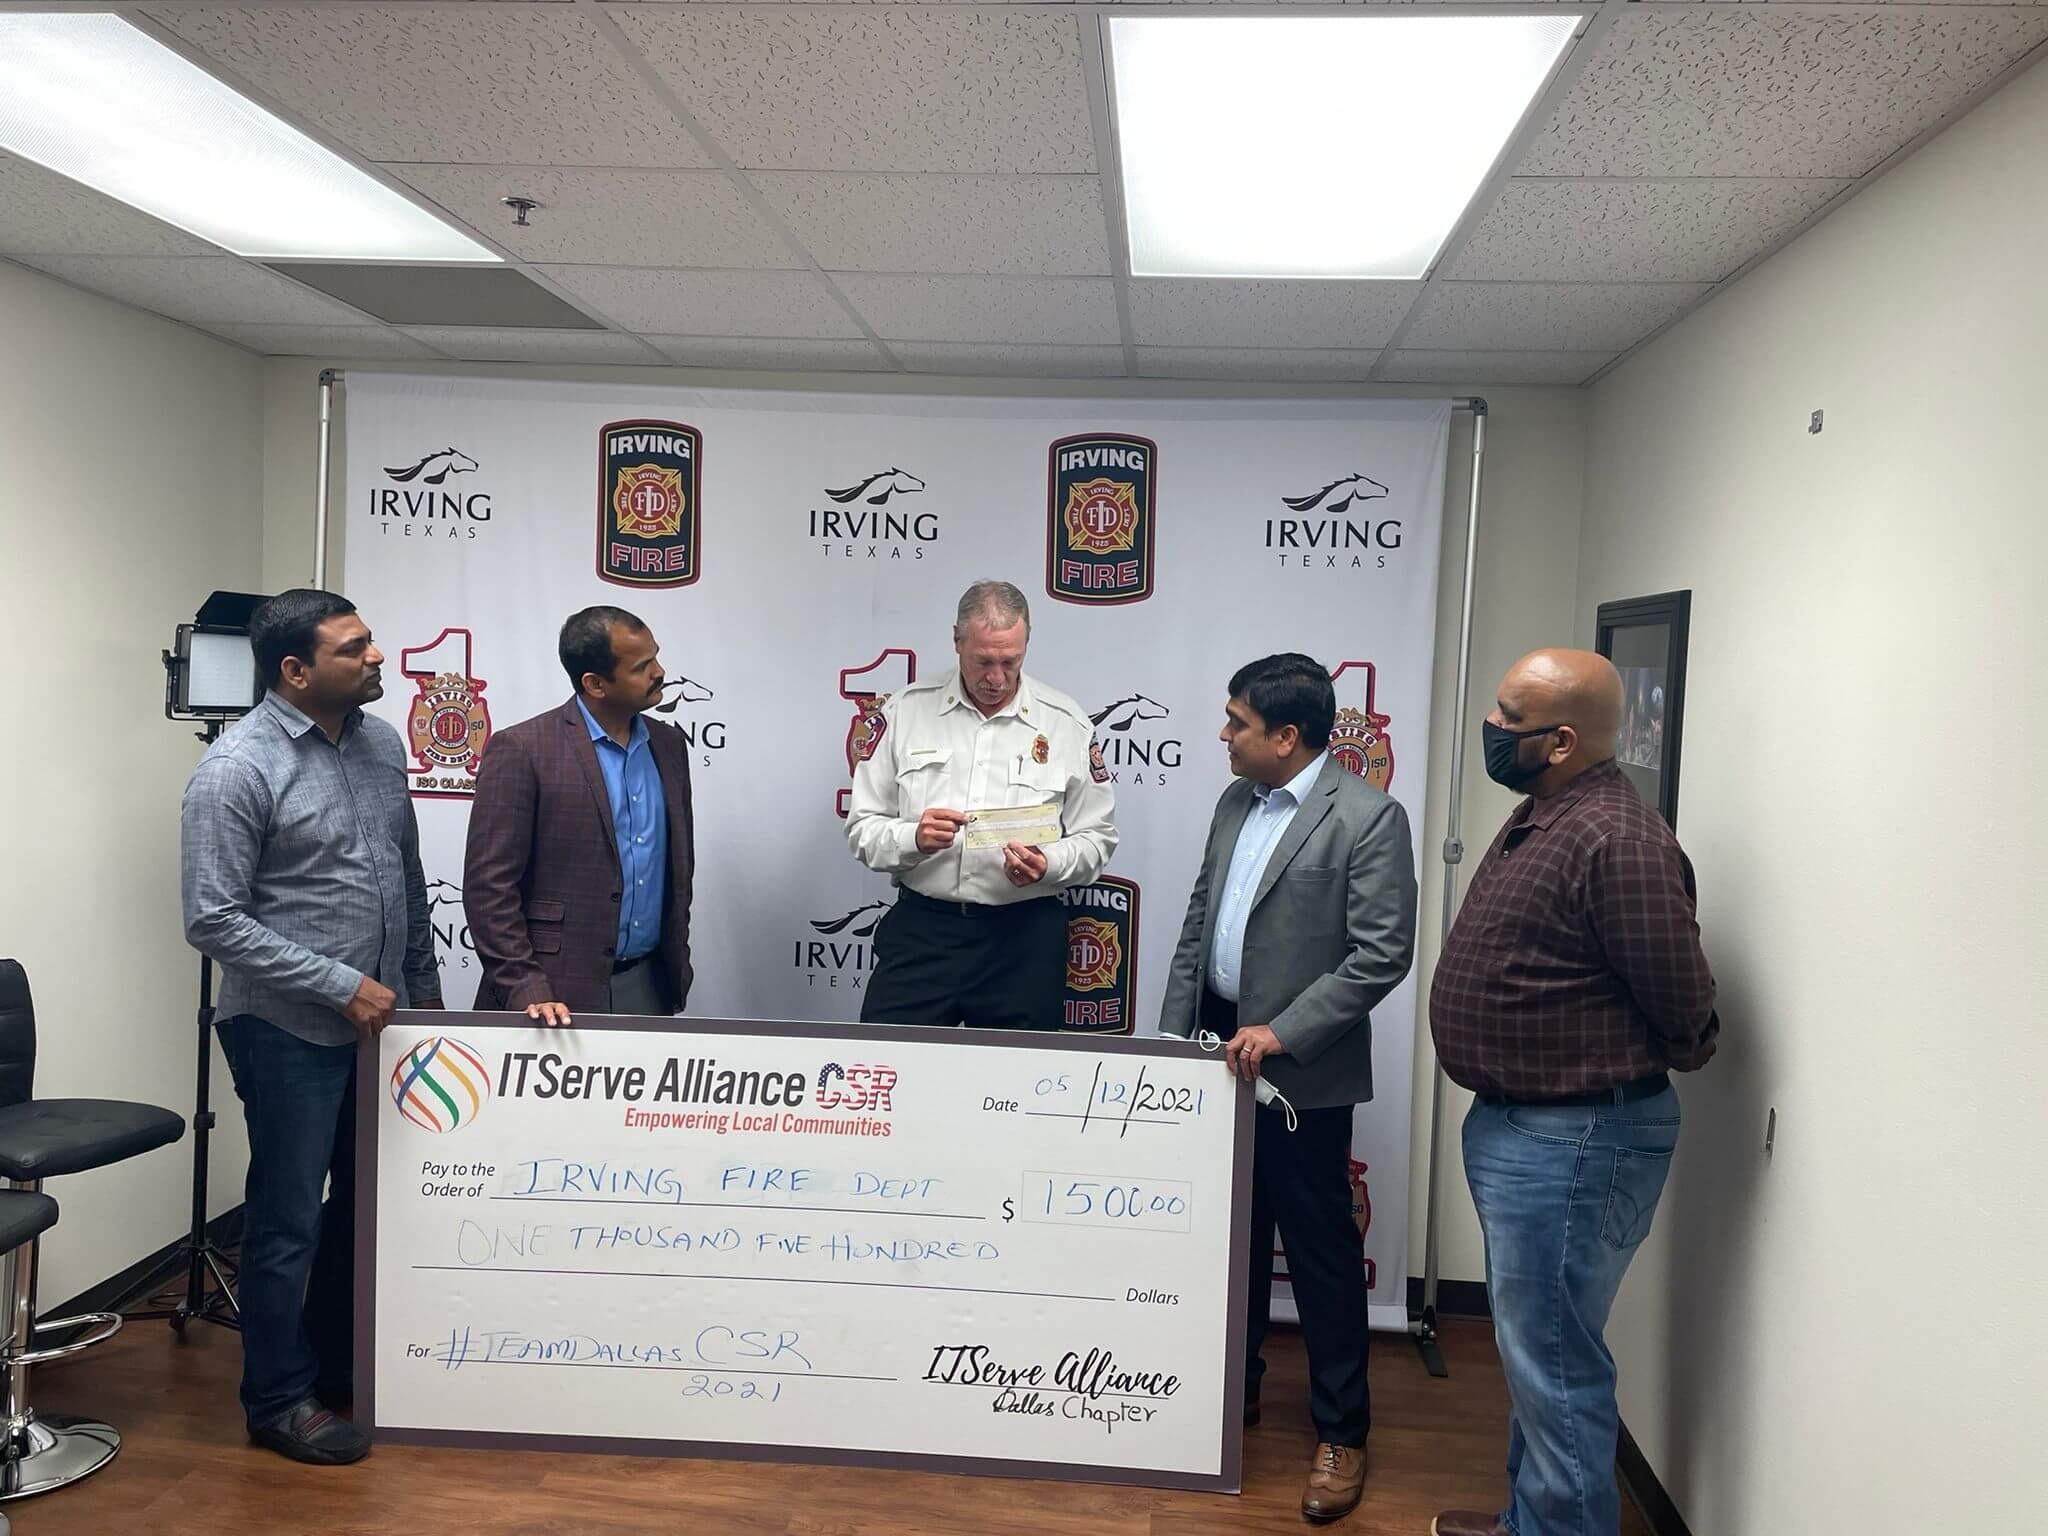 Appreciation of check $1500 to Irving Fire Department